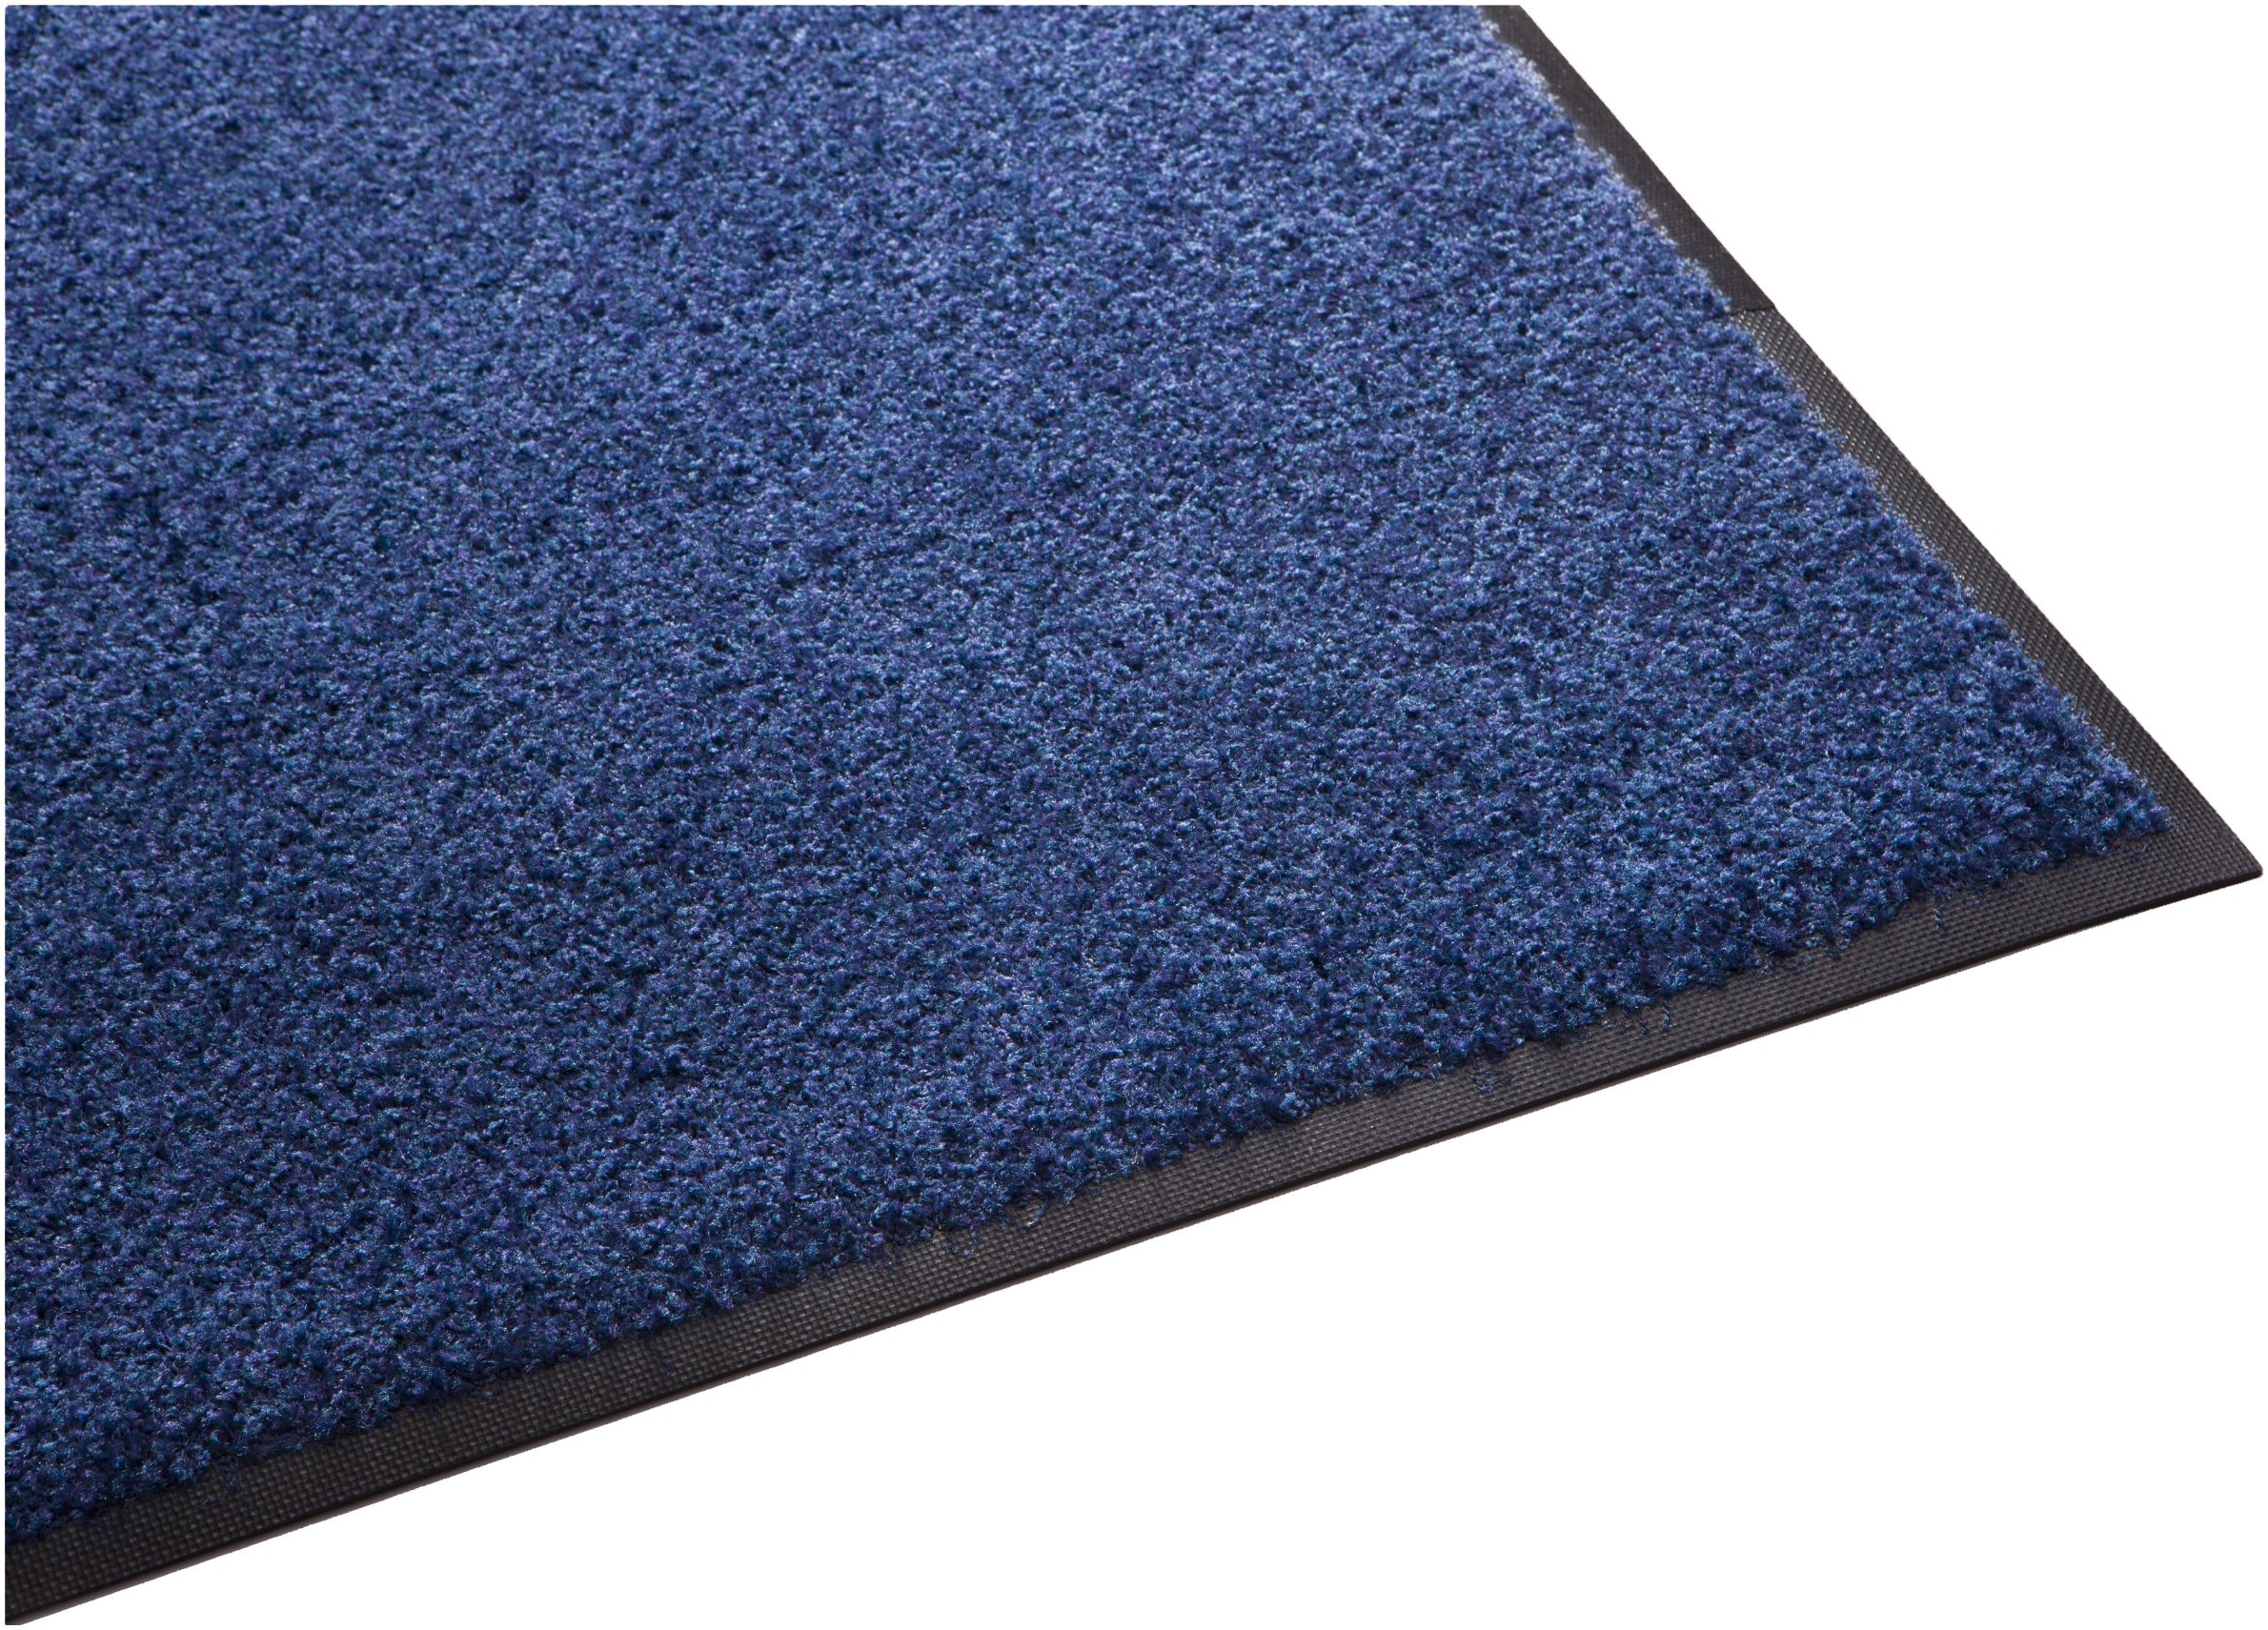 Guardian Platinum Series Indoor Wiper Floor Mat, Rubber with Nylon Carpet, 6'x7', Blue